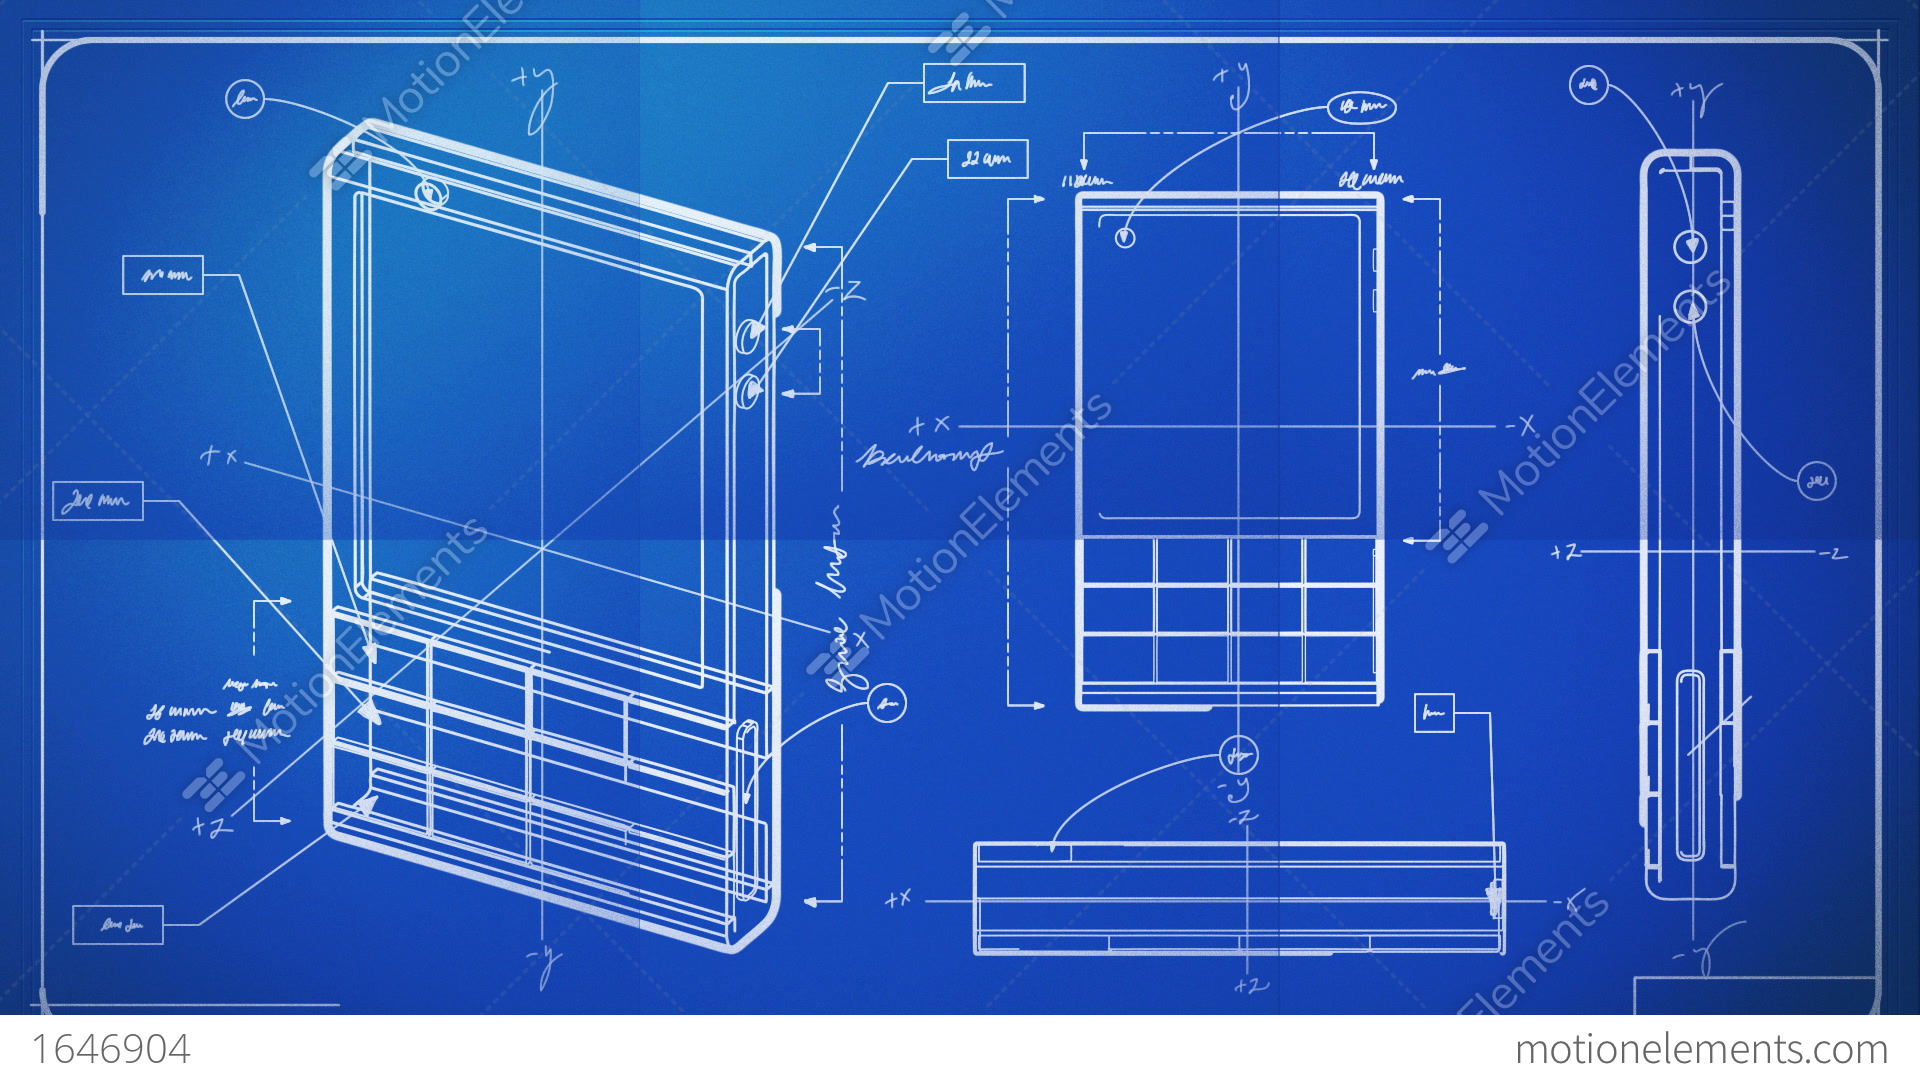 Classic Smartphone Technical Drawing Blueprint Stock Animation | 1646904